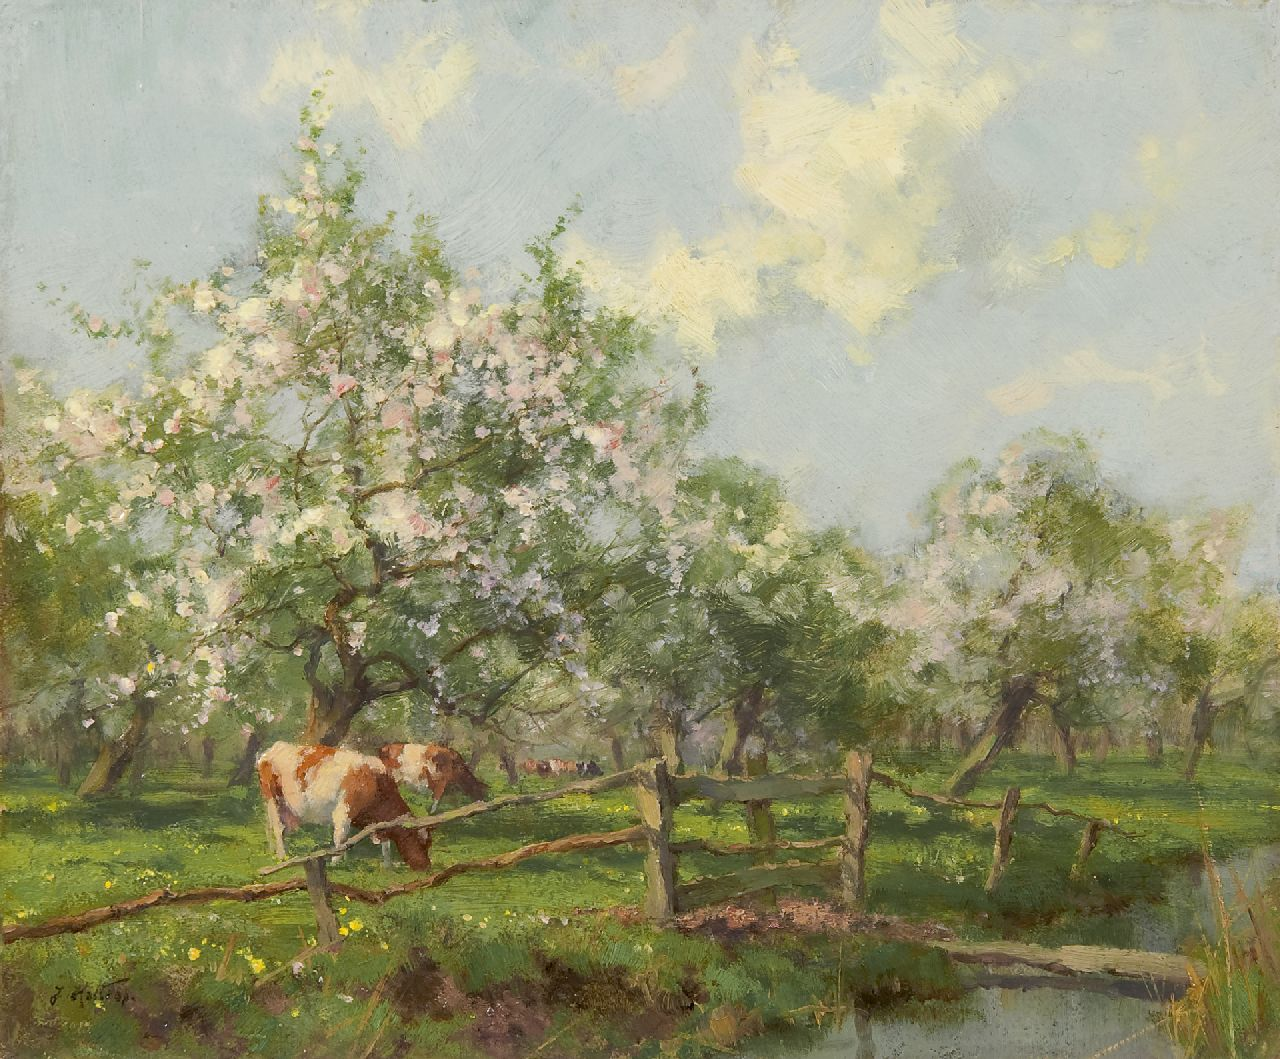 Holtrup J.  | Jan Holtrup, A flowering orchard near Bunnik, oil on panel 19.4 x 23.1 cm, signed l.l.